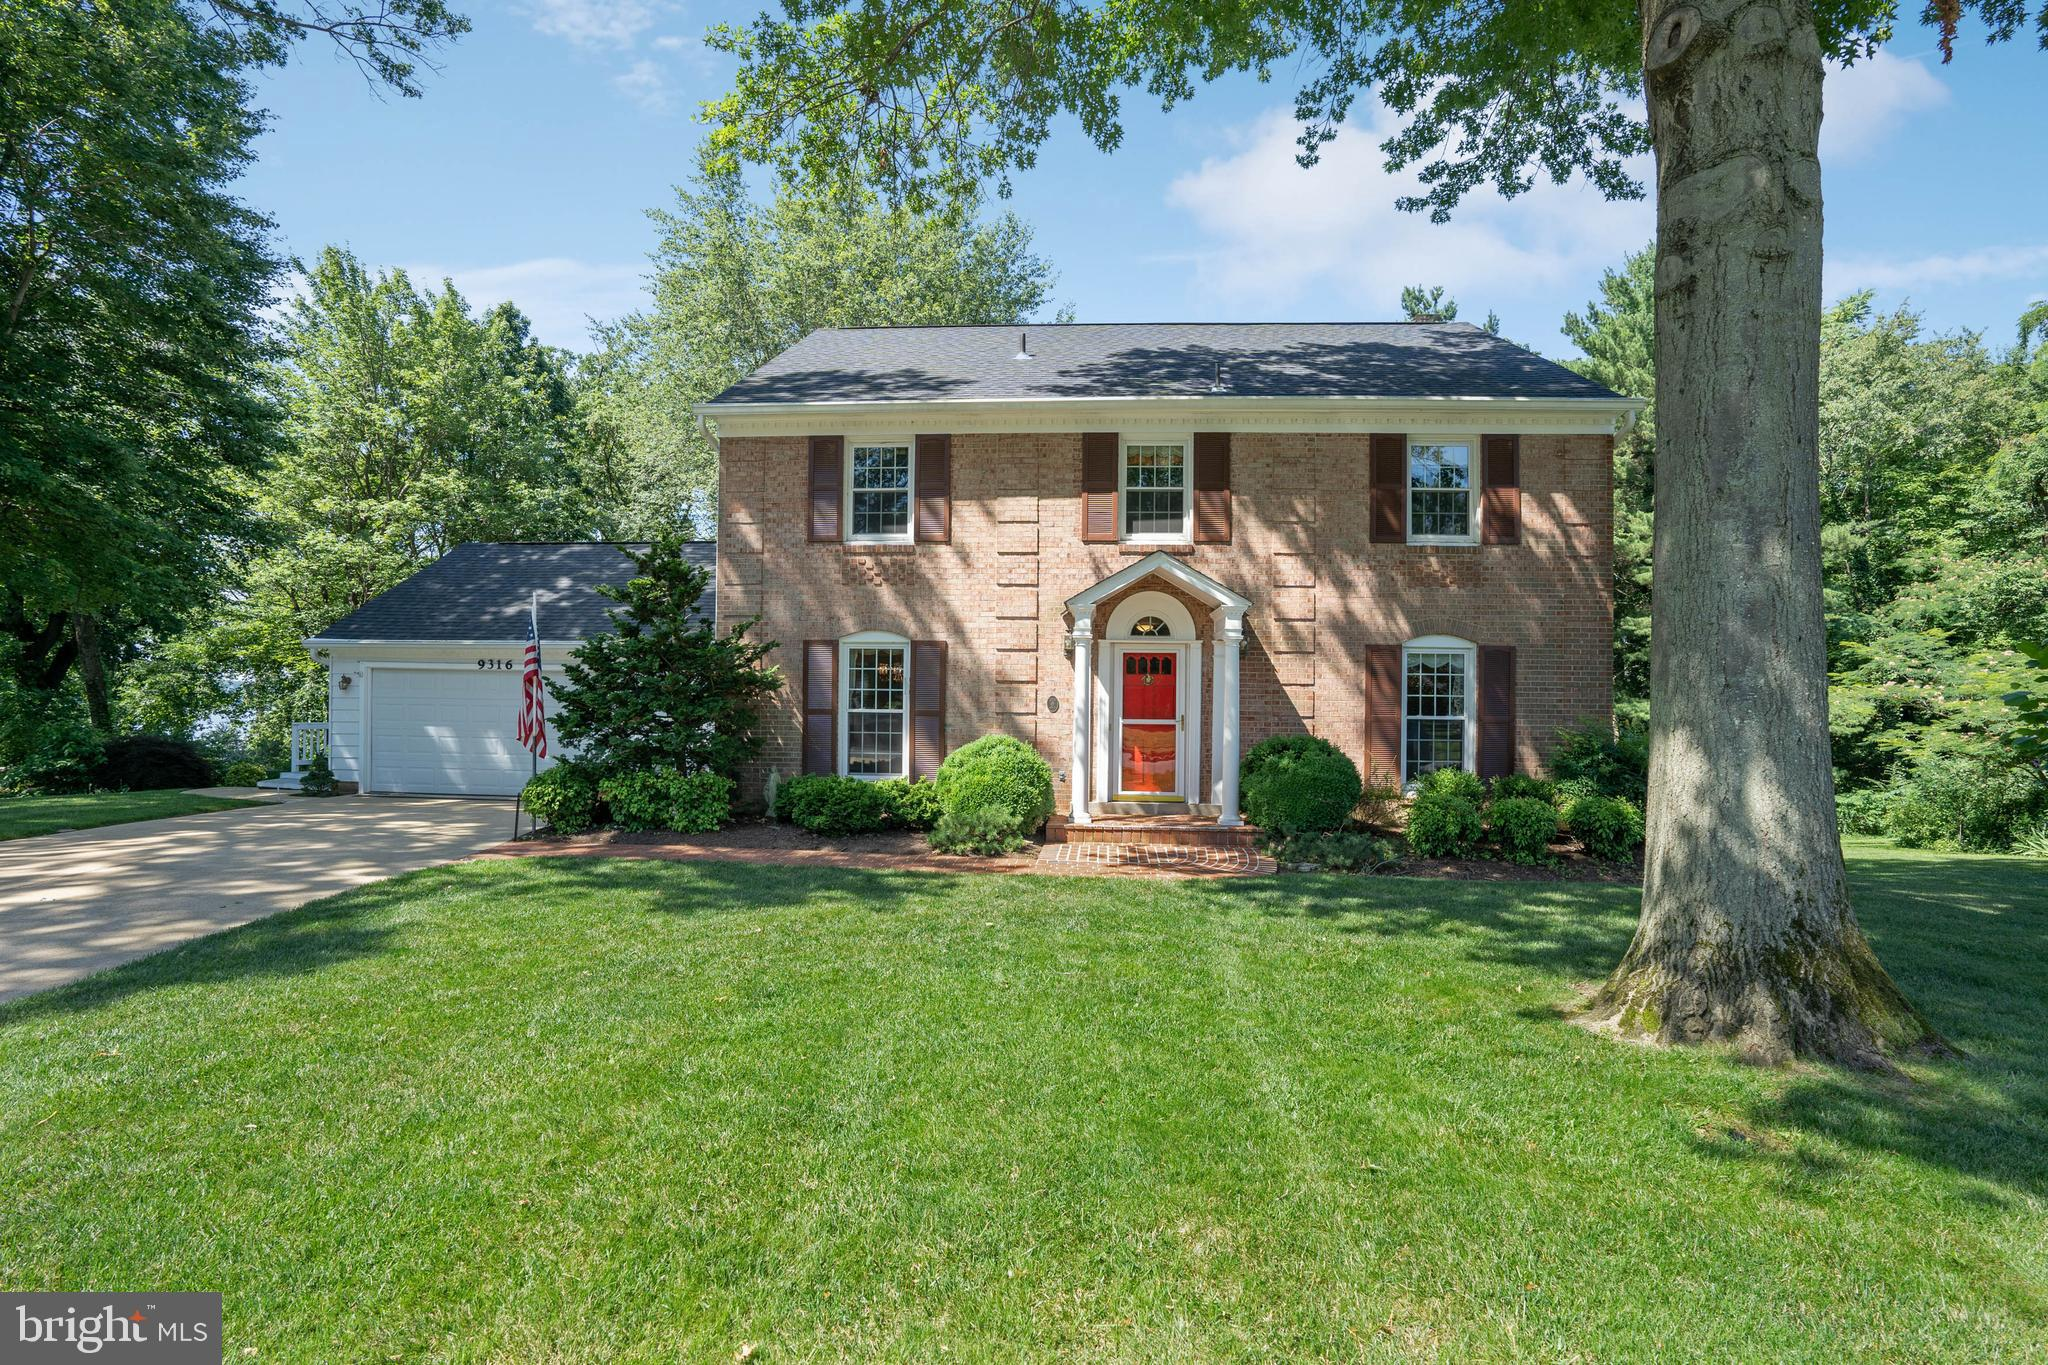 9316 OLD MANSION ROAD, ALEXANDRIA, VA 22309